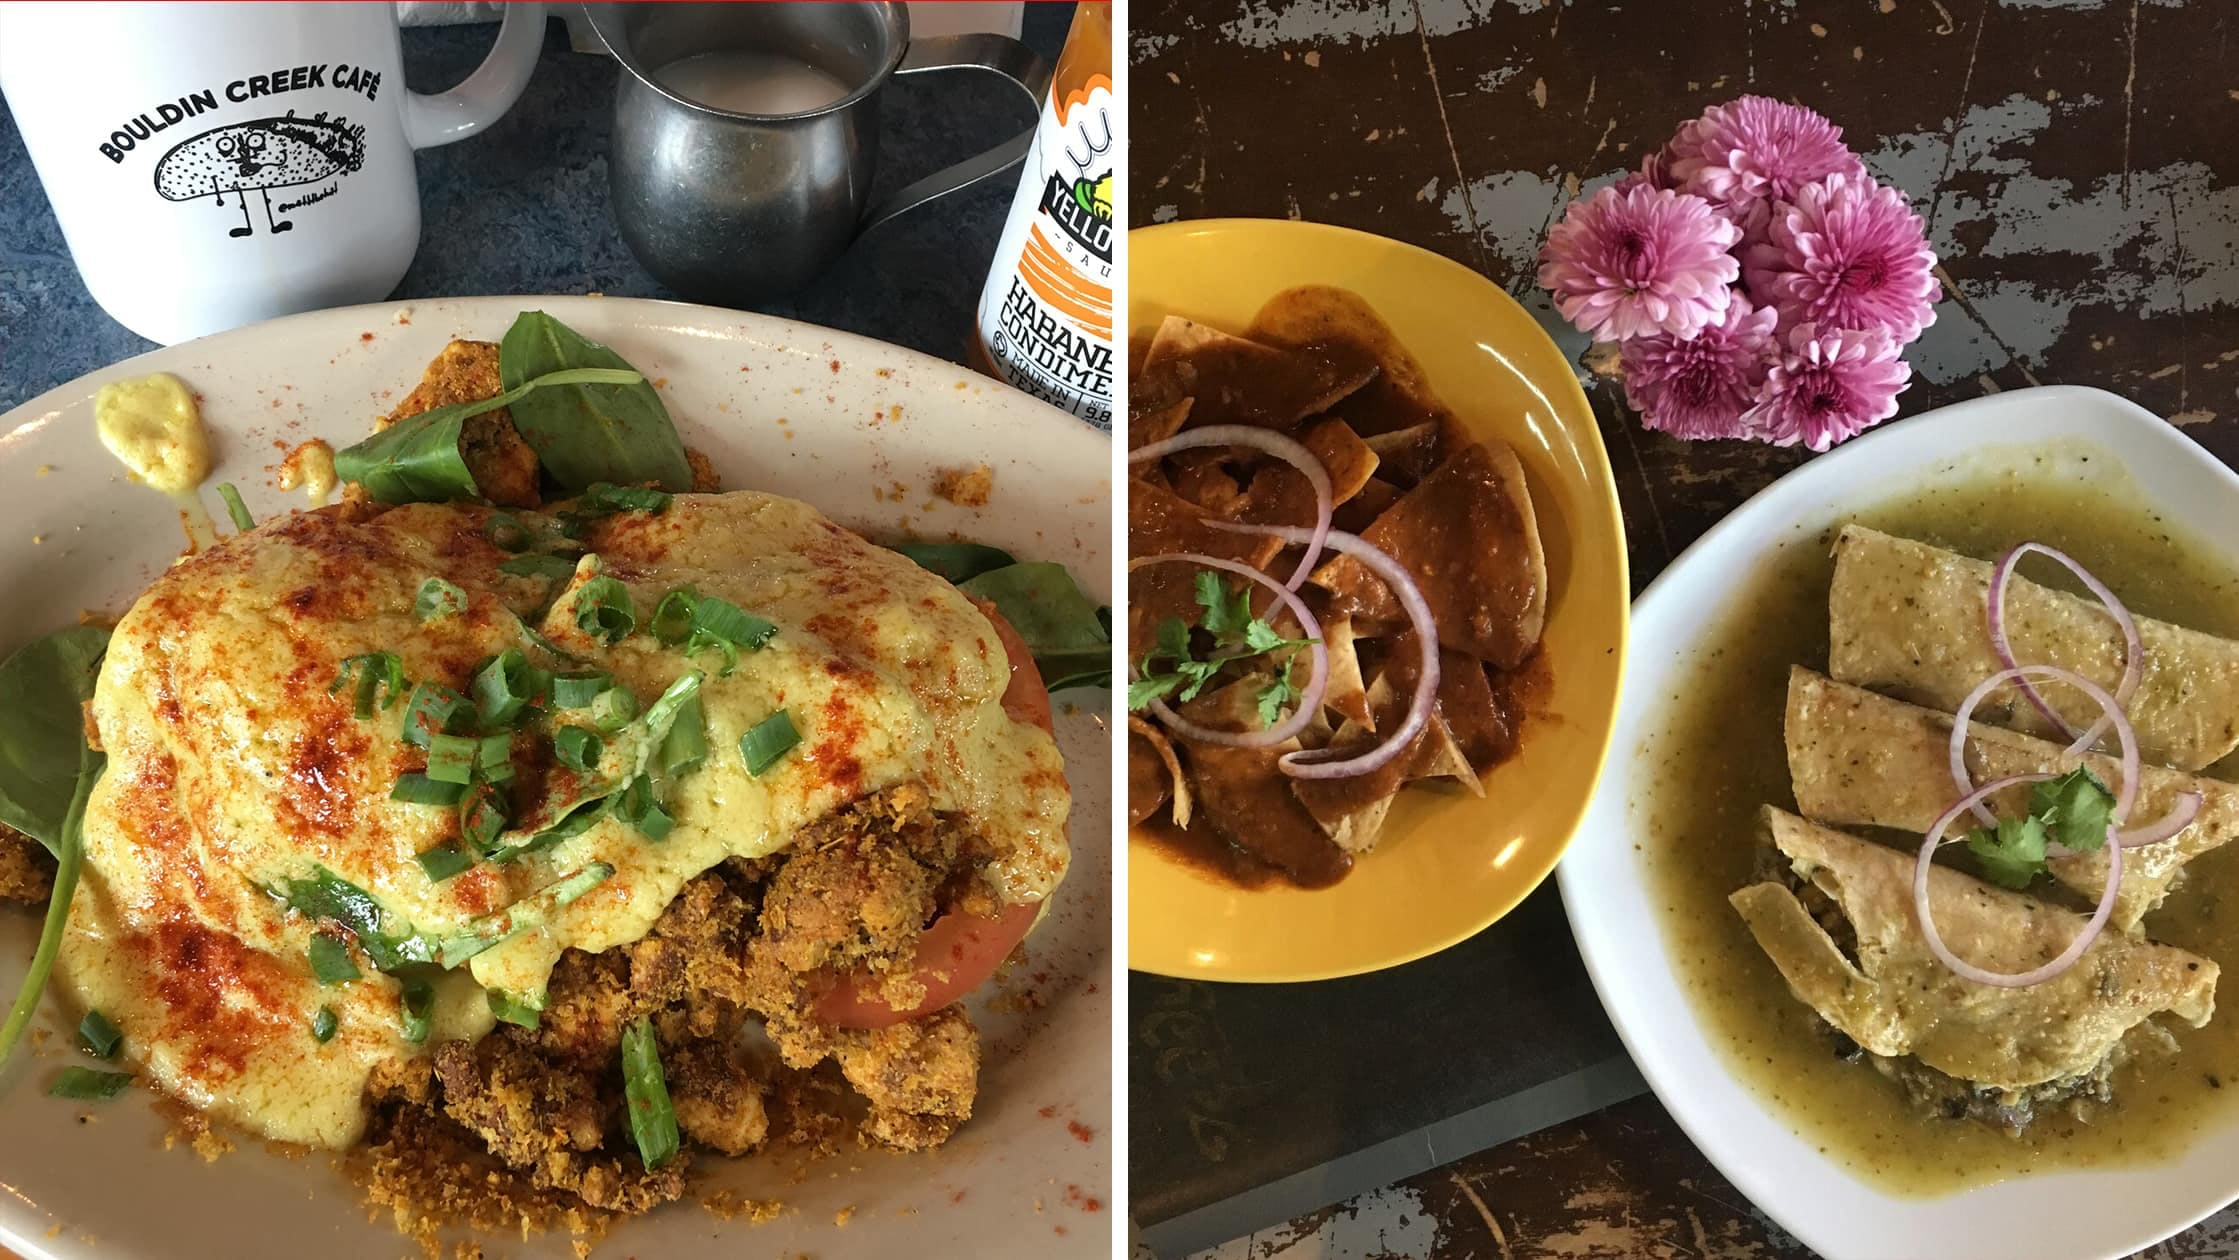 Left: Breakfast in Austin, Texas | Right: Chilaquiles verdes in Mexico City